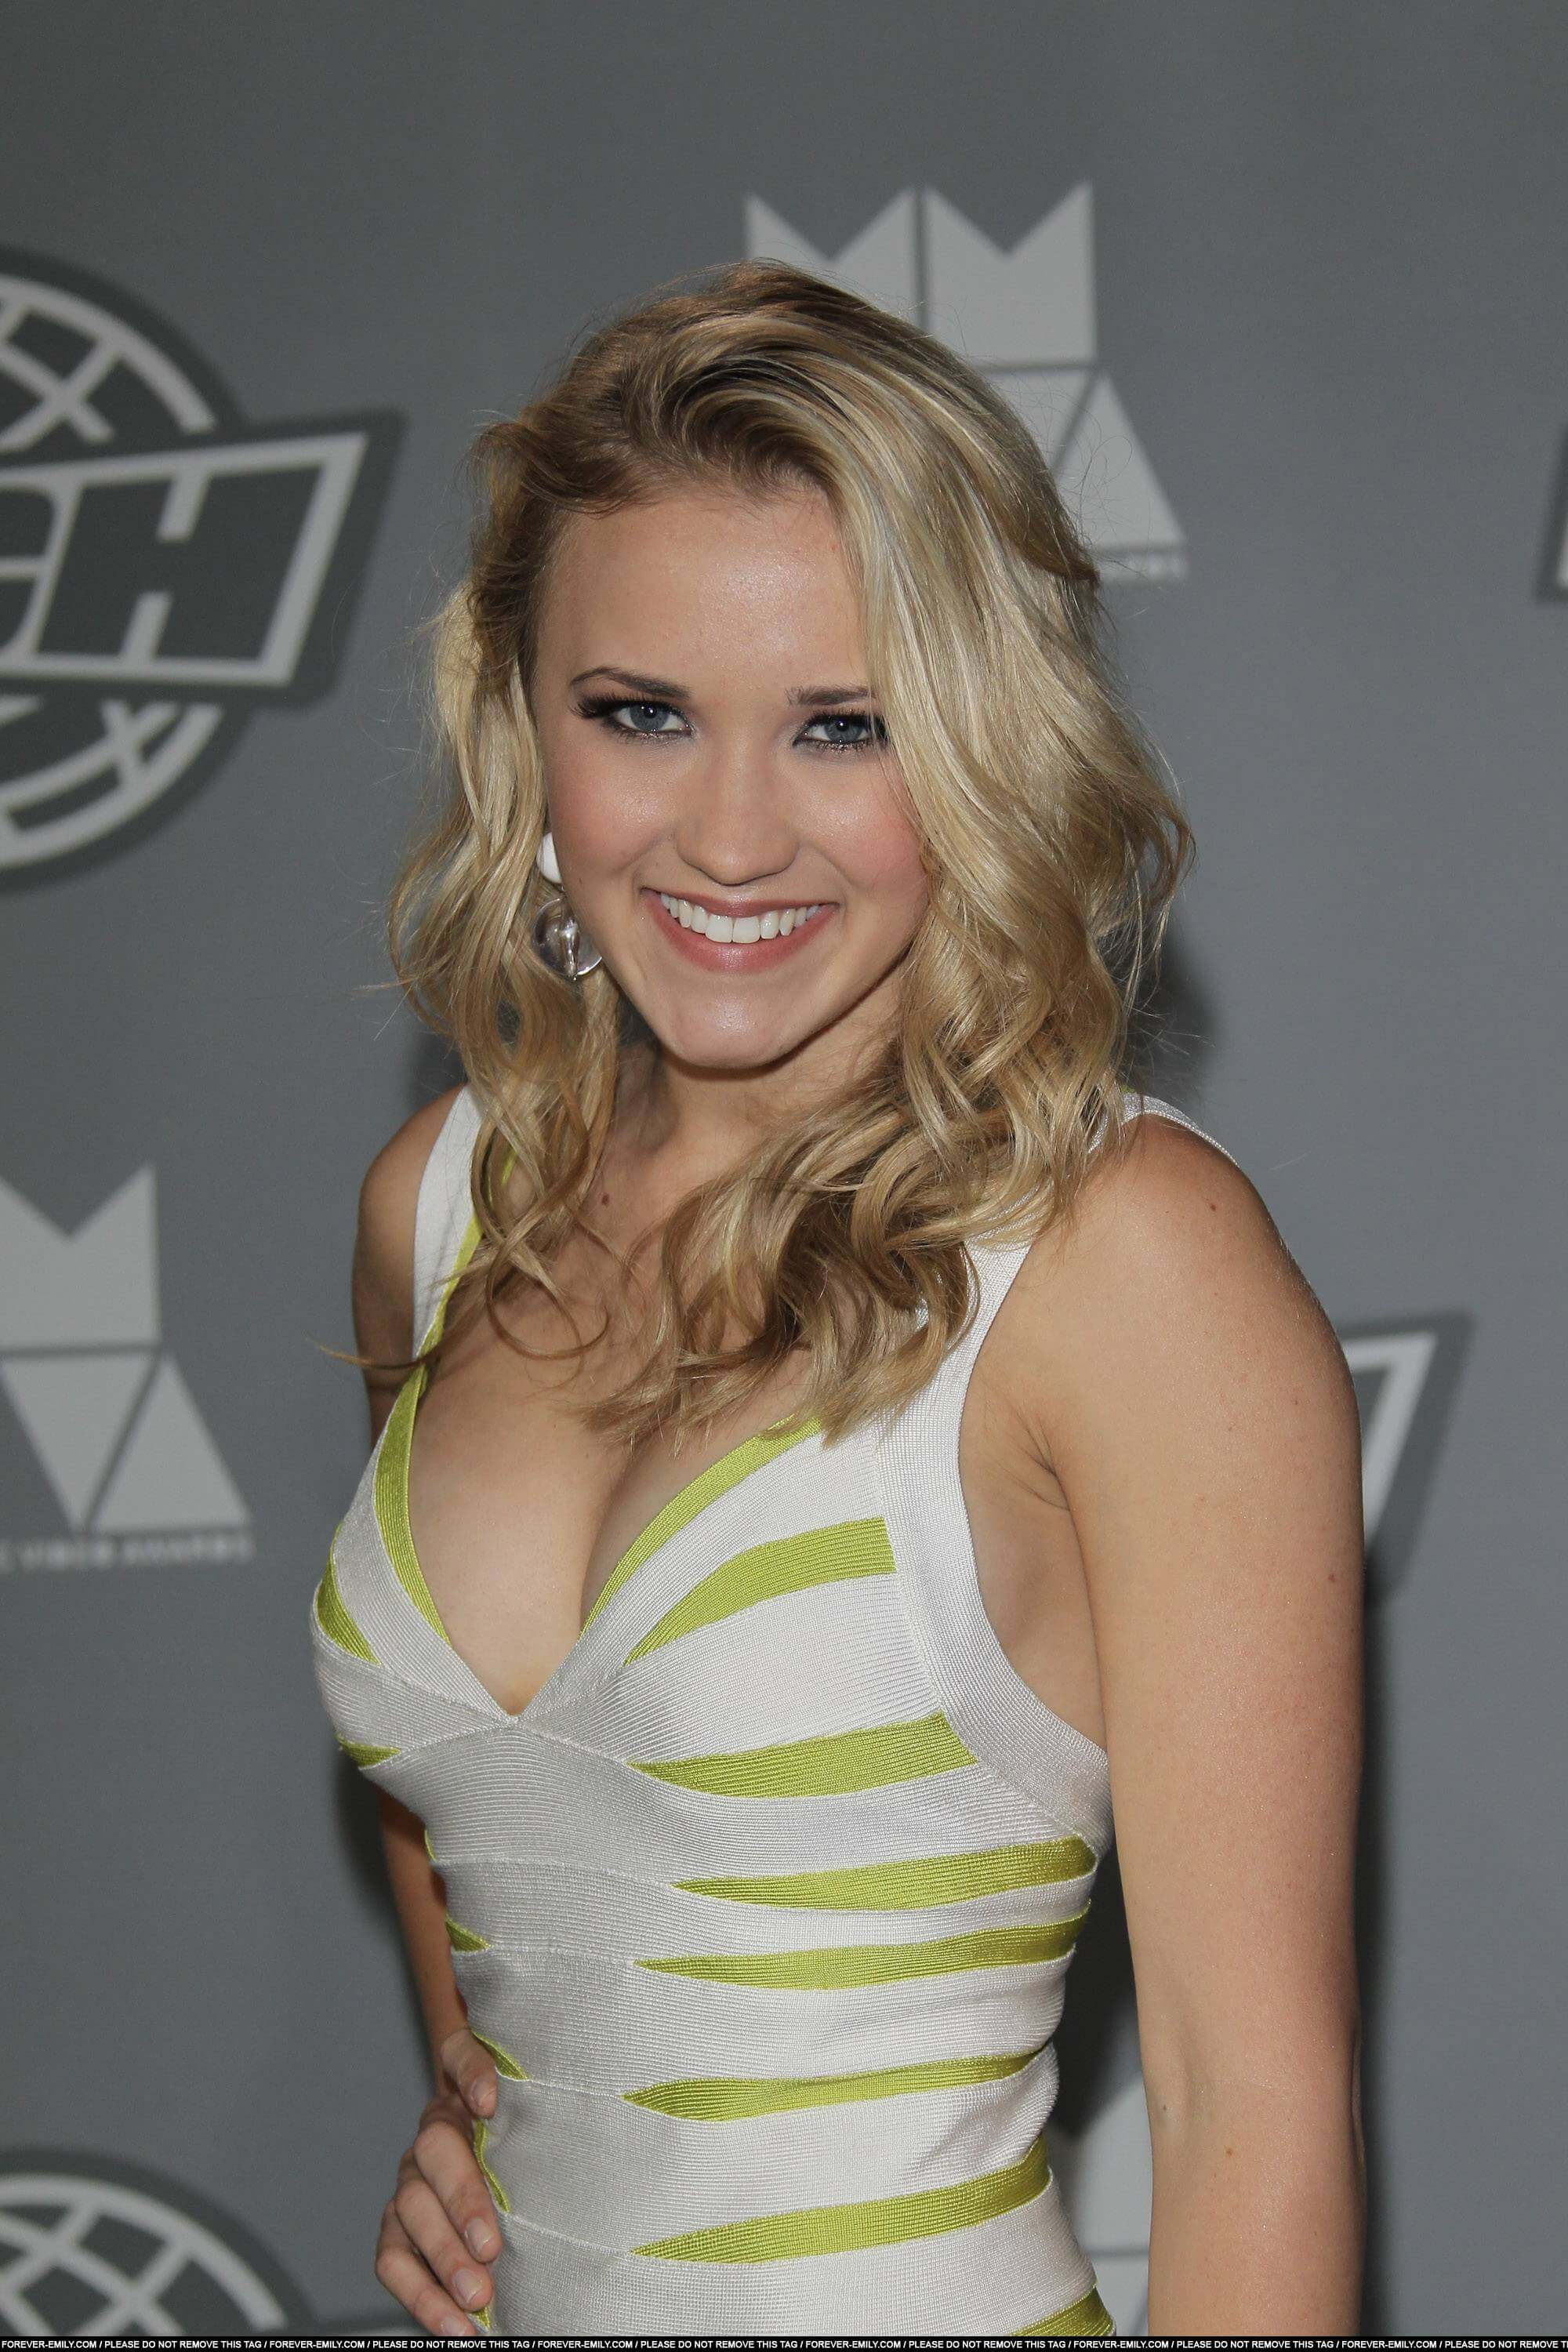 Emily Osment hot side pic